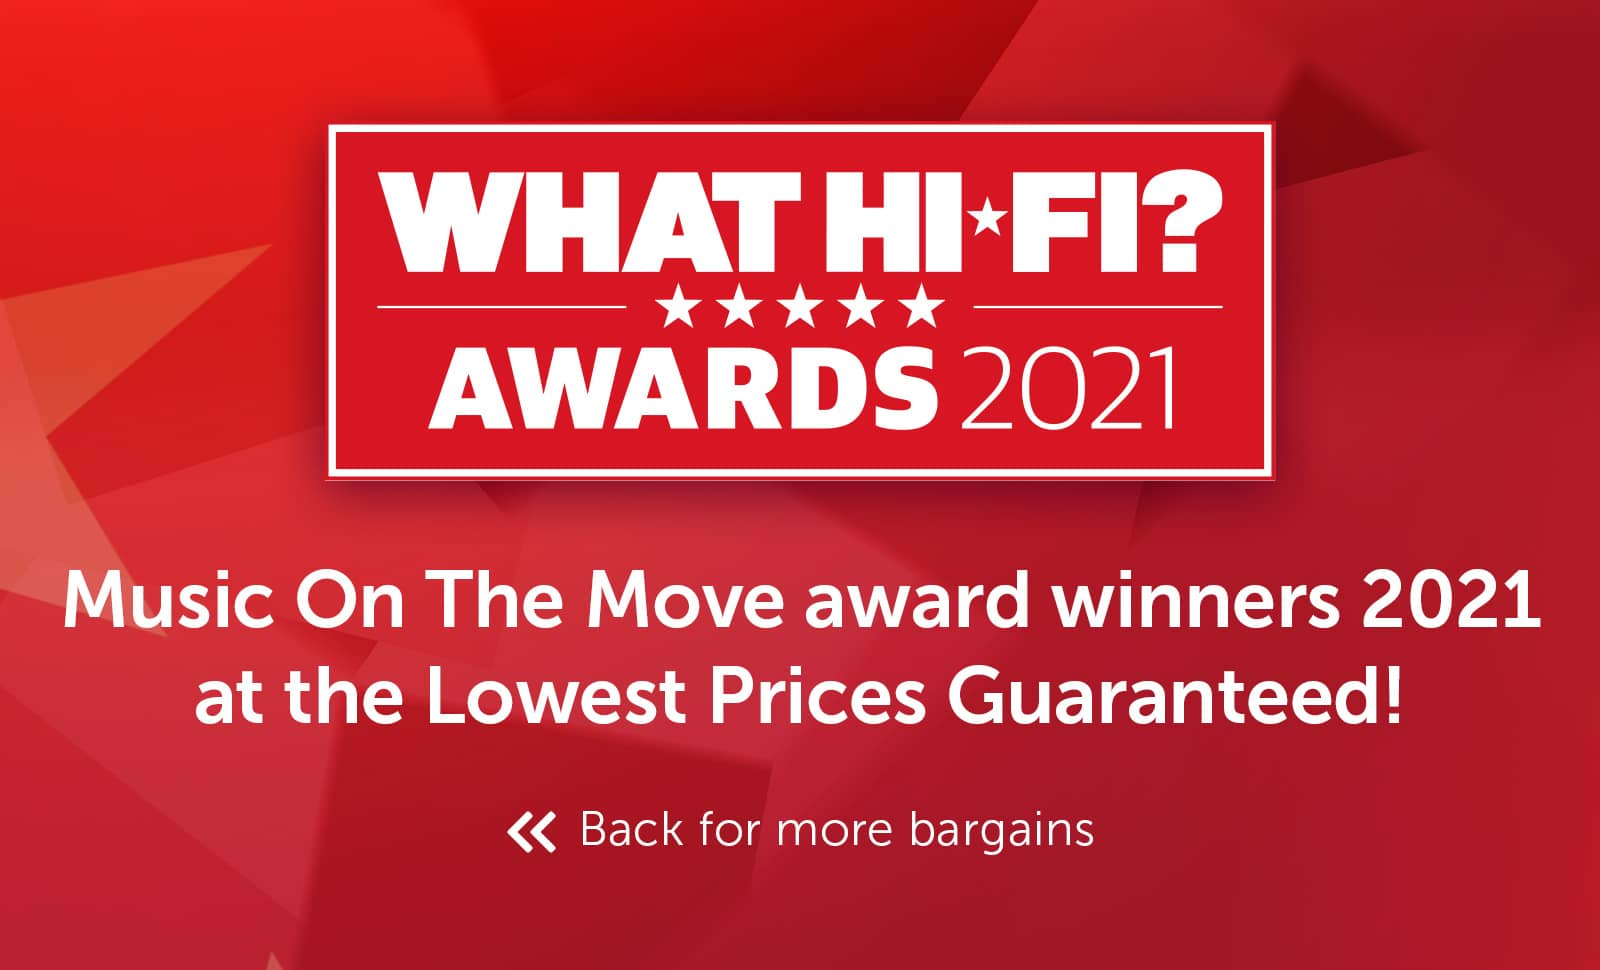 What Hi-Fi? Best Buy Awards 2021 - Music on the move